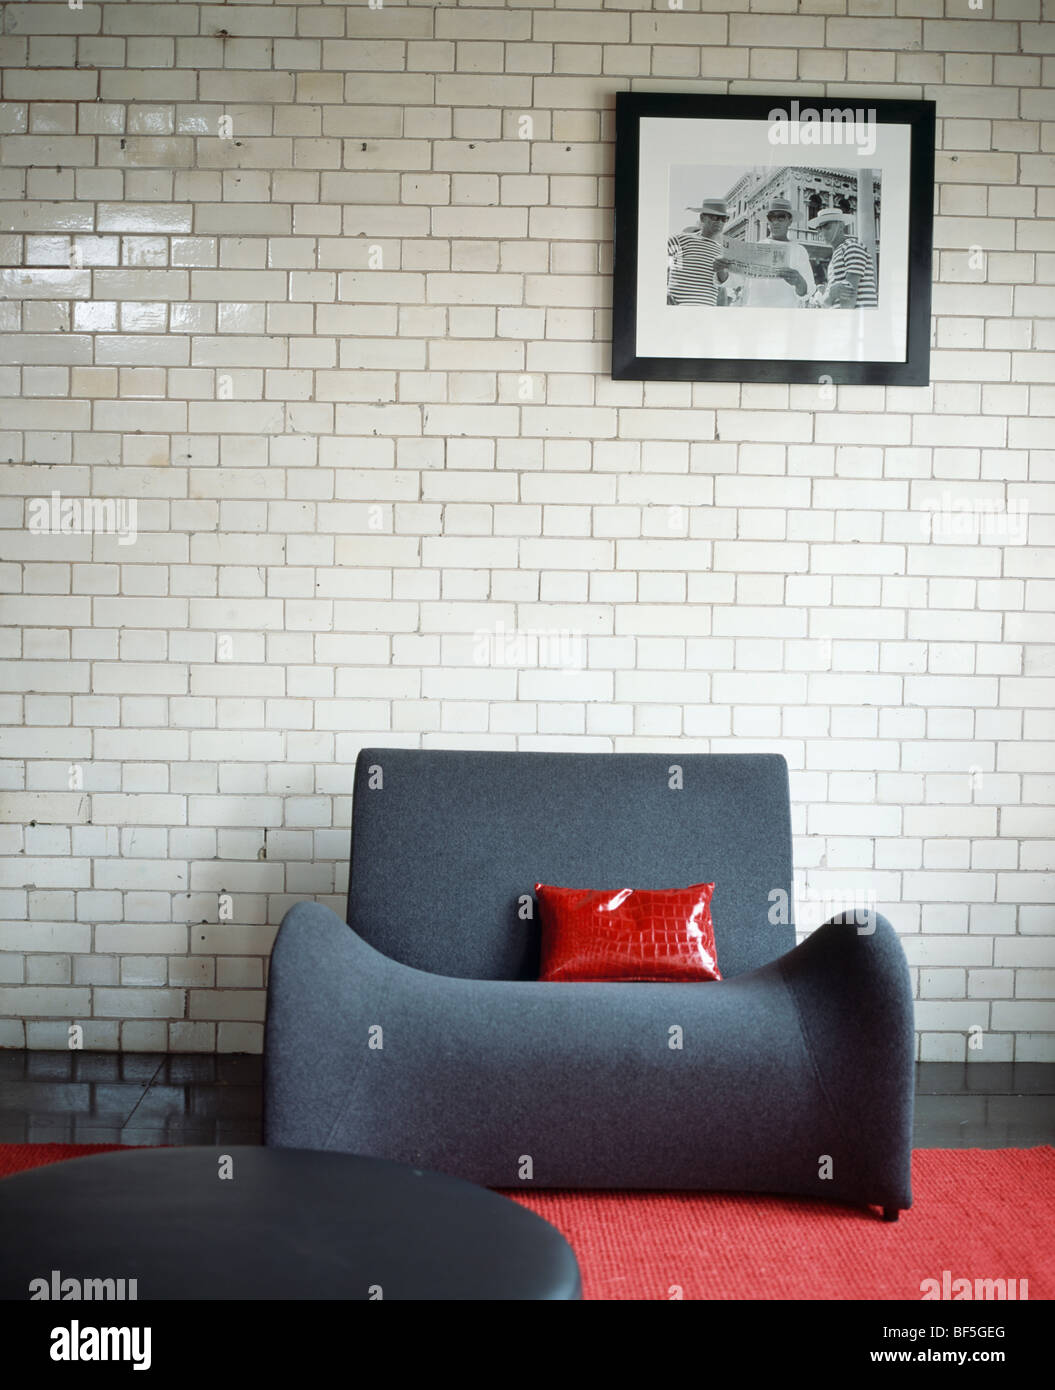 Red Wall Living Room Stock Photos & Red Wall Living Room Stock ...